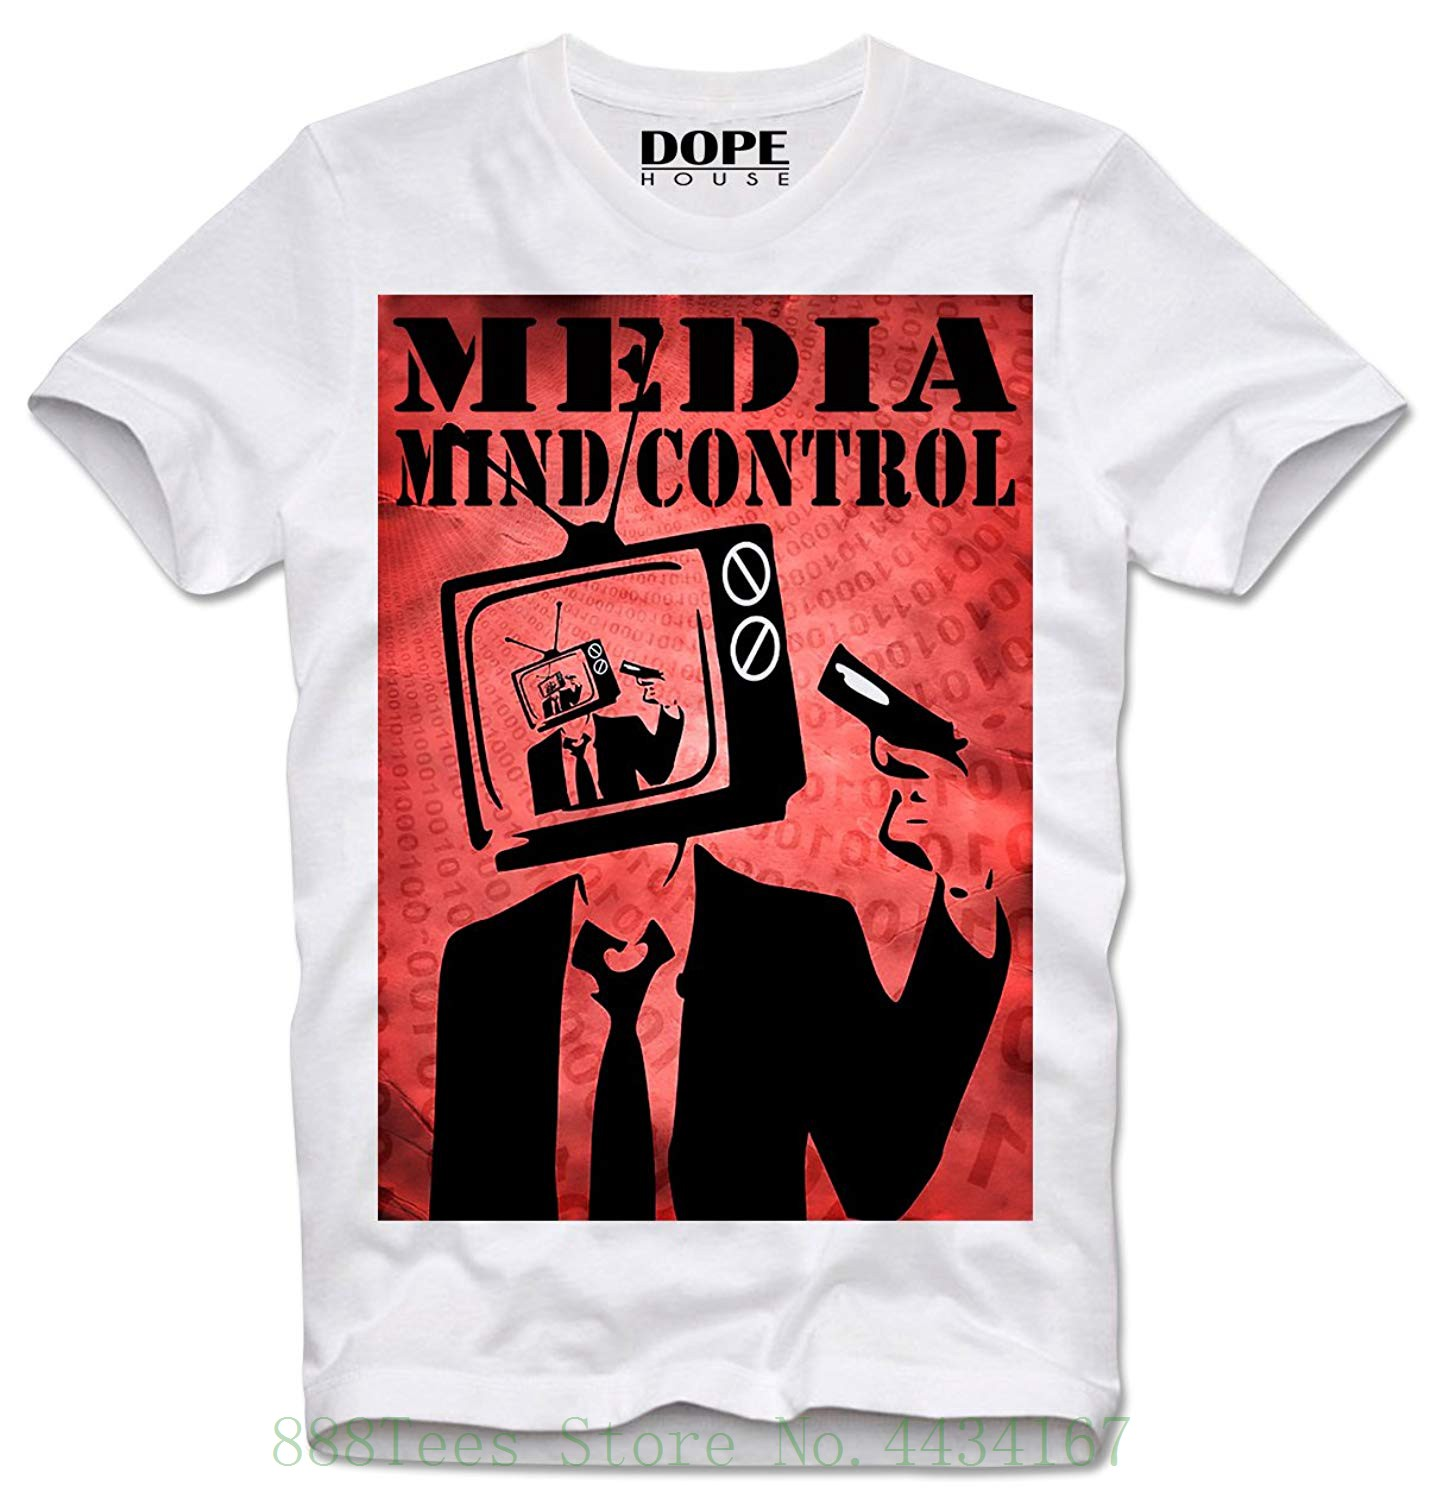 Hot Sale Dopehouse T Shirt Media Mind Control Brain Wash Nwo New Acrylick Online Men39s Short Circuit Tshirt World Order Tv Fake News Simple Sleeved Cotton